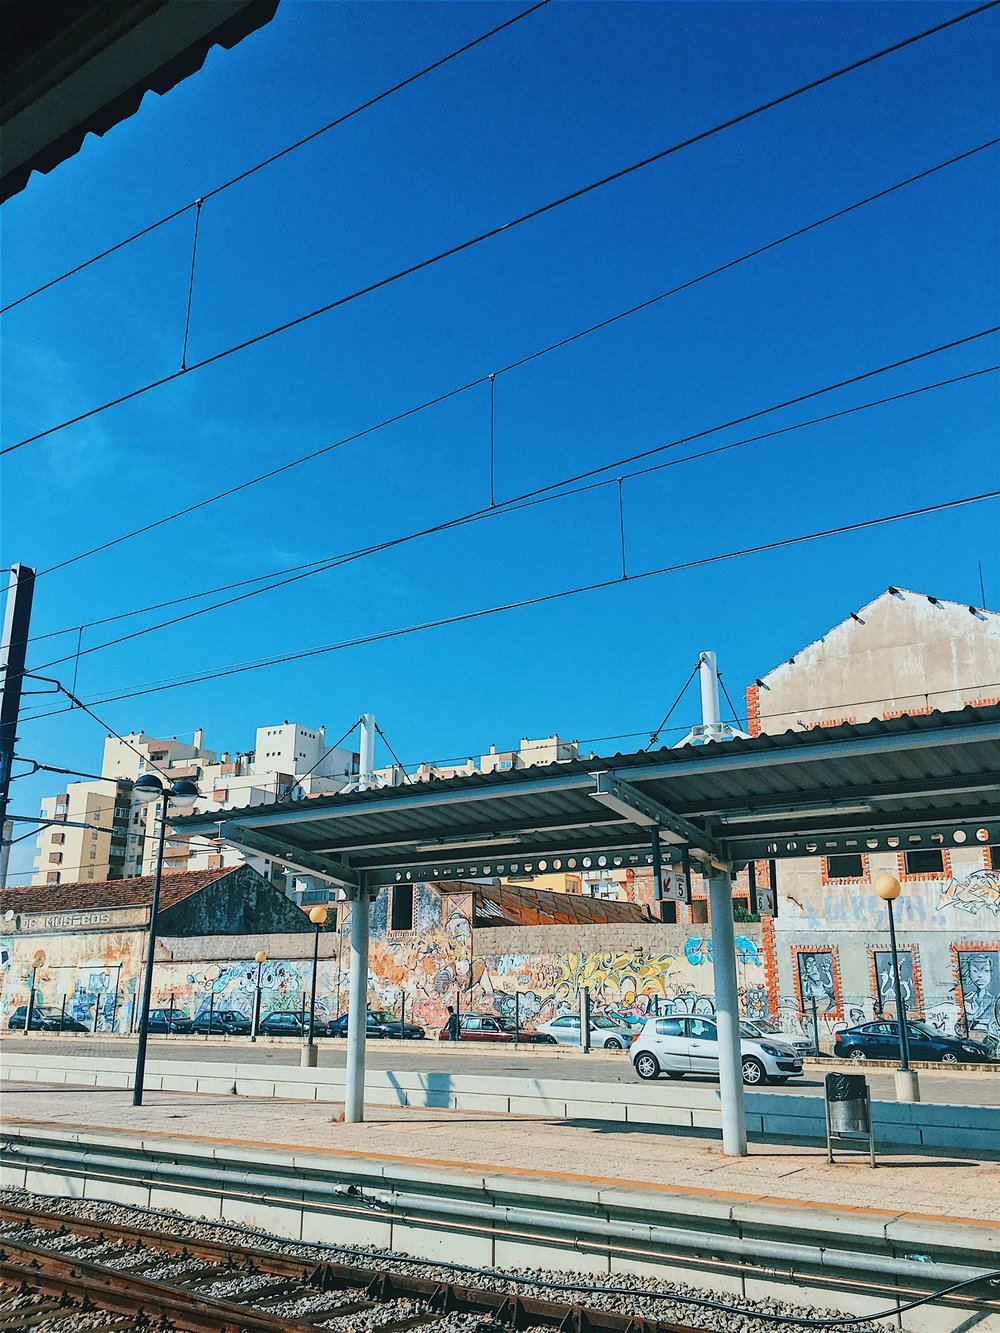 A colorful city: waiting at the Faro station for our train back to Lisb  on